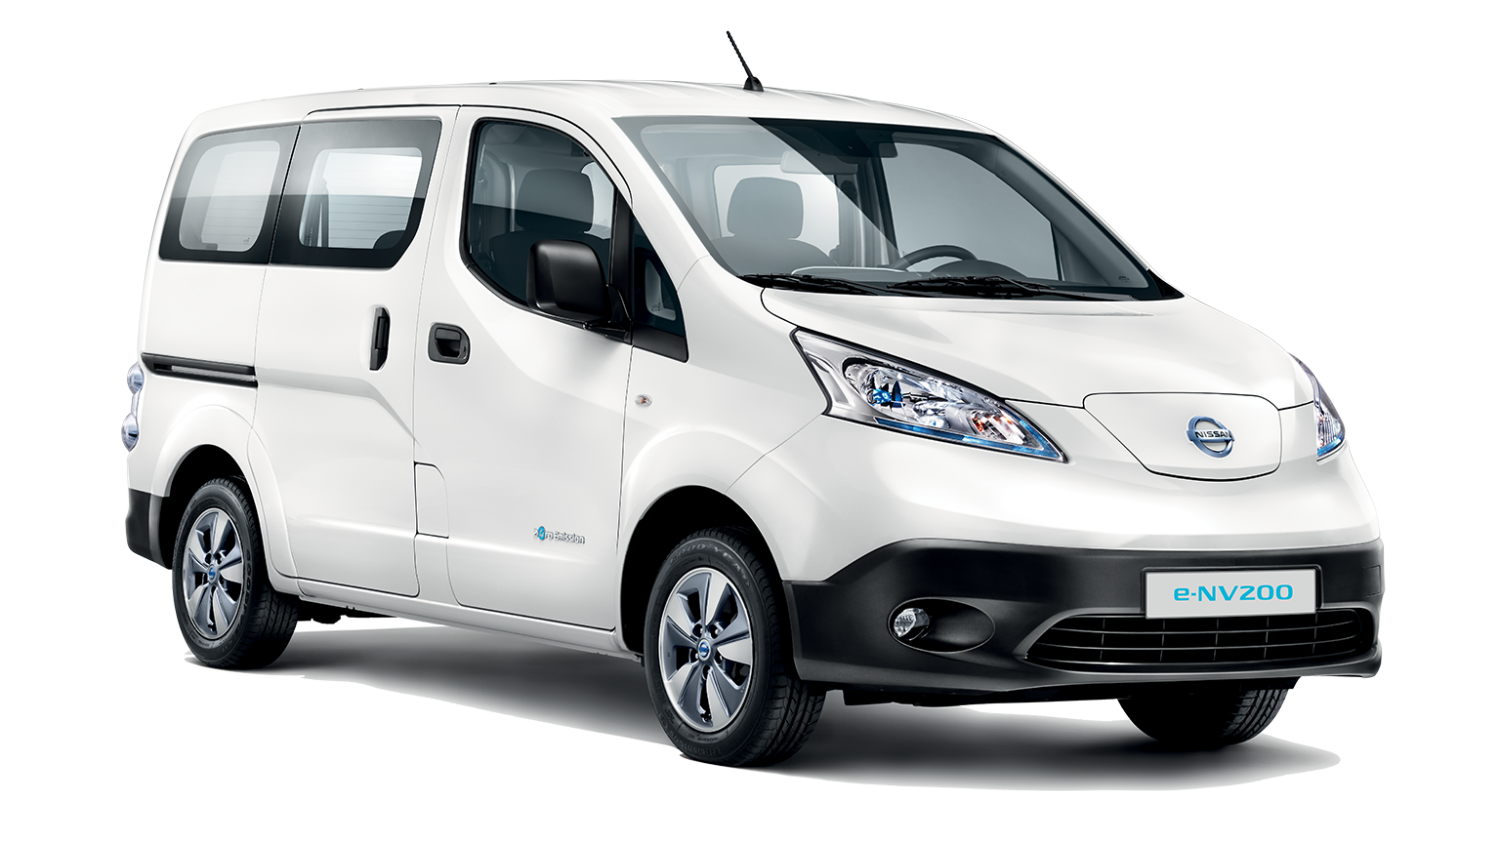 Nissan e-NV200 - 3/4 front view